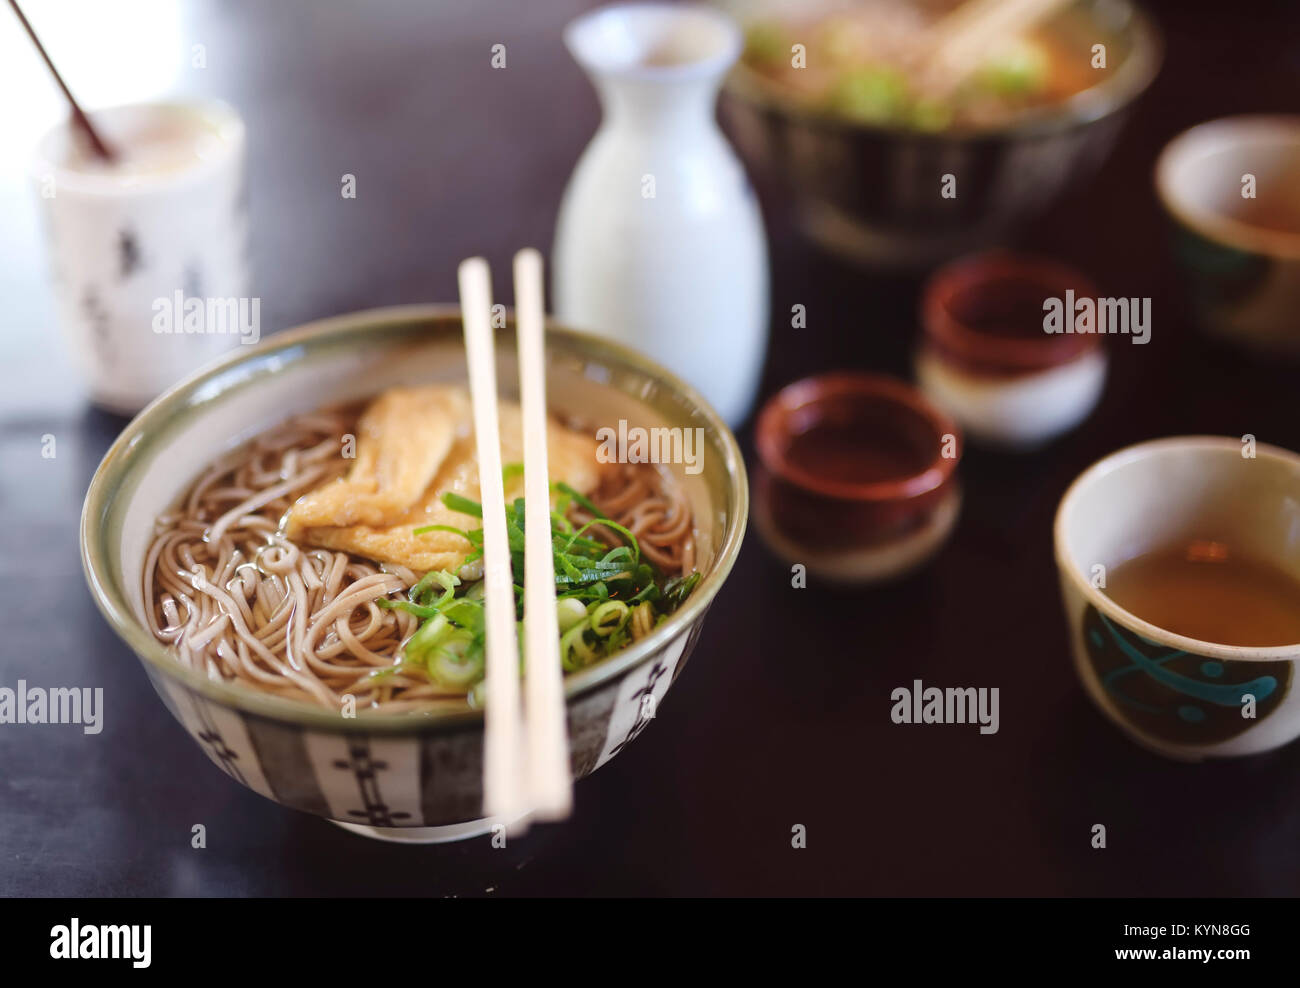 Bowl of Ramen with Soba noodles and tofu on a table in a Japanese restaurant, Kyoto, Japan. - Stock Image